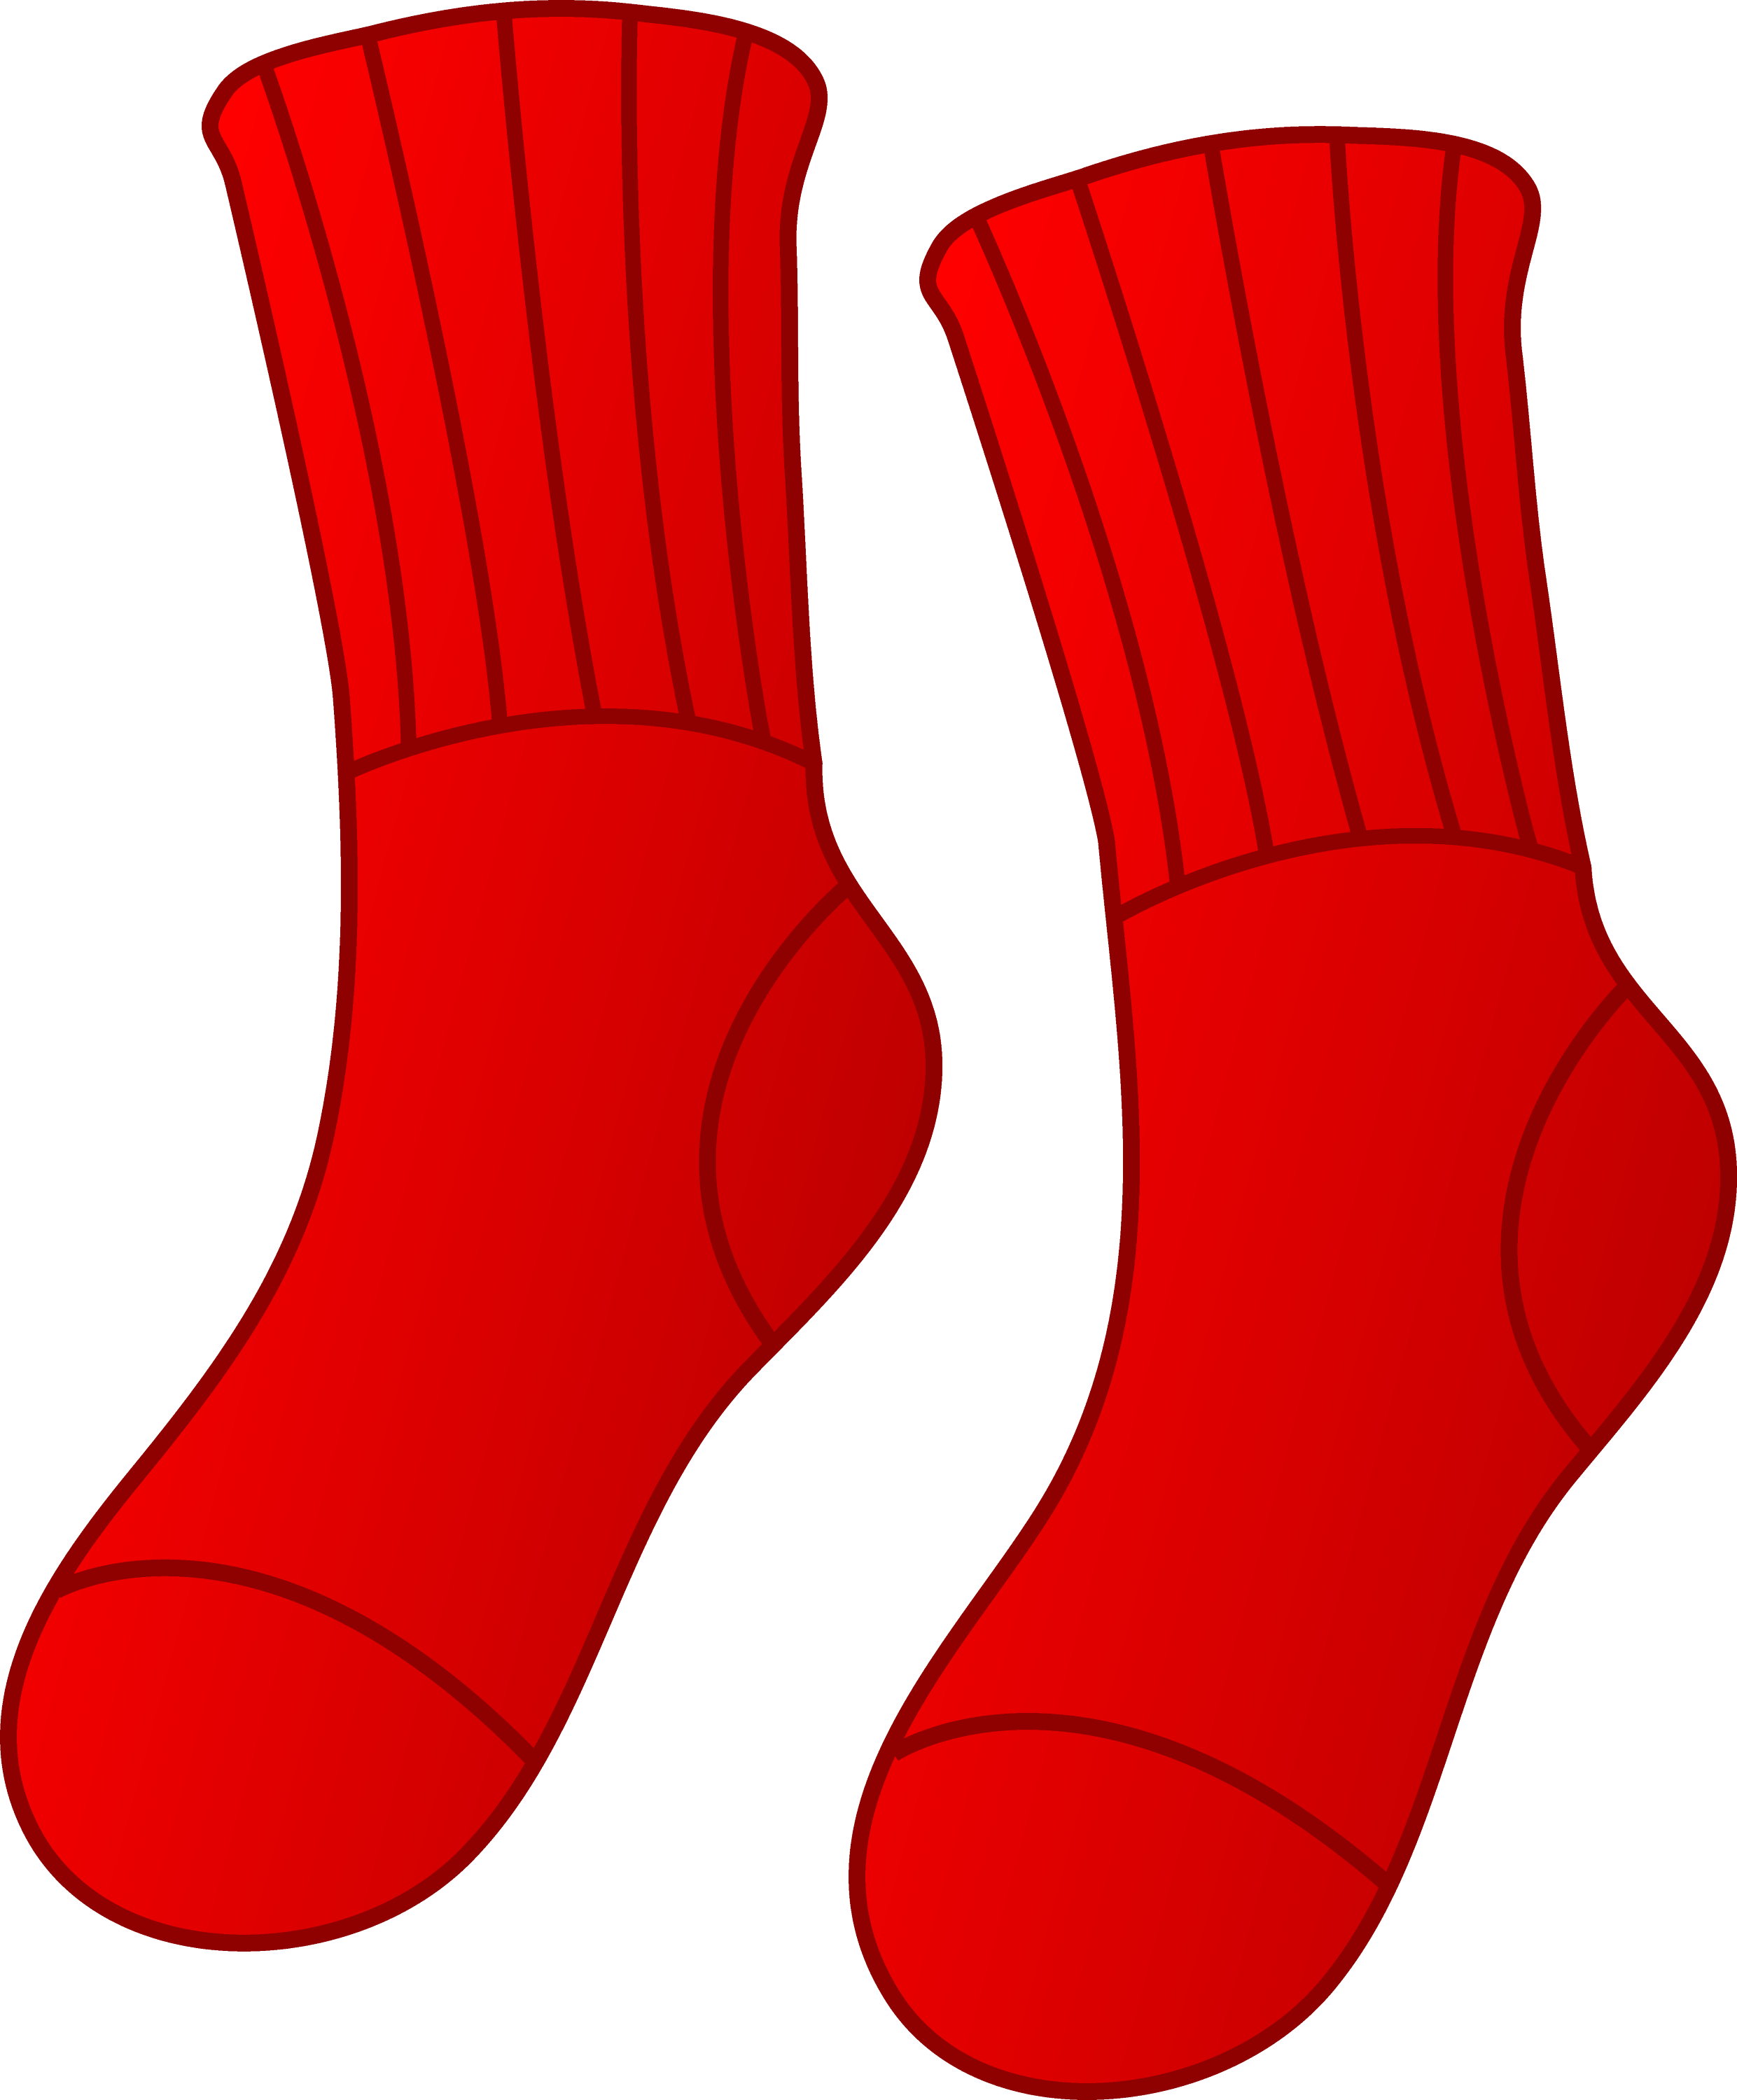 pair of red socks free clip art rh sweetclipart com socks clipart sick clipart